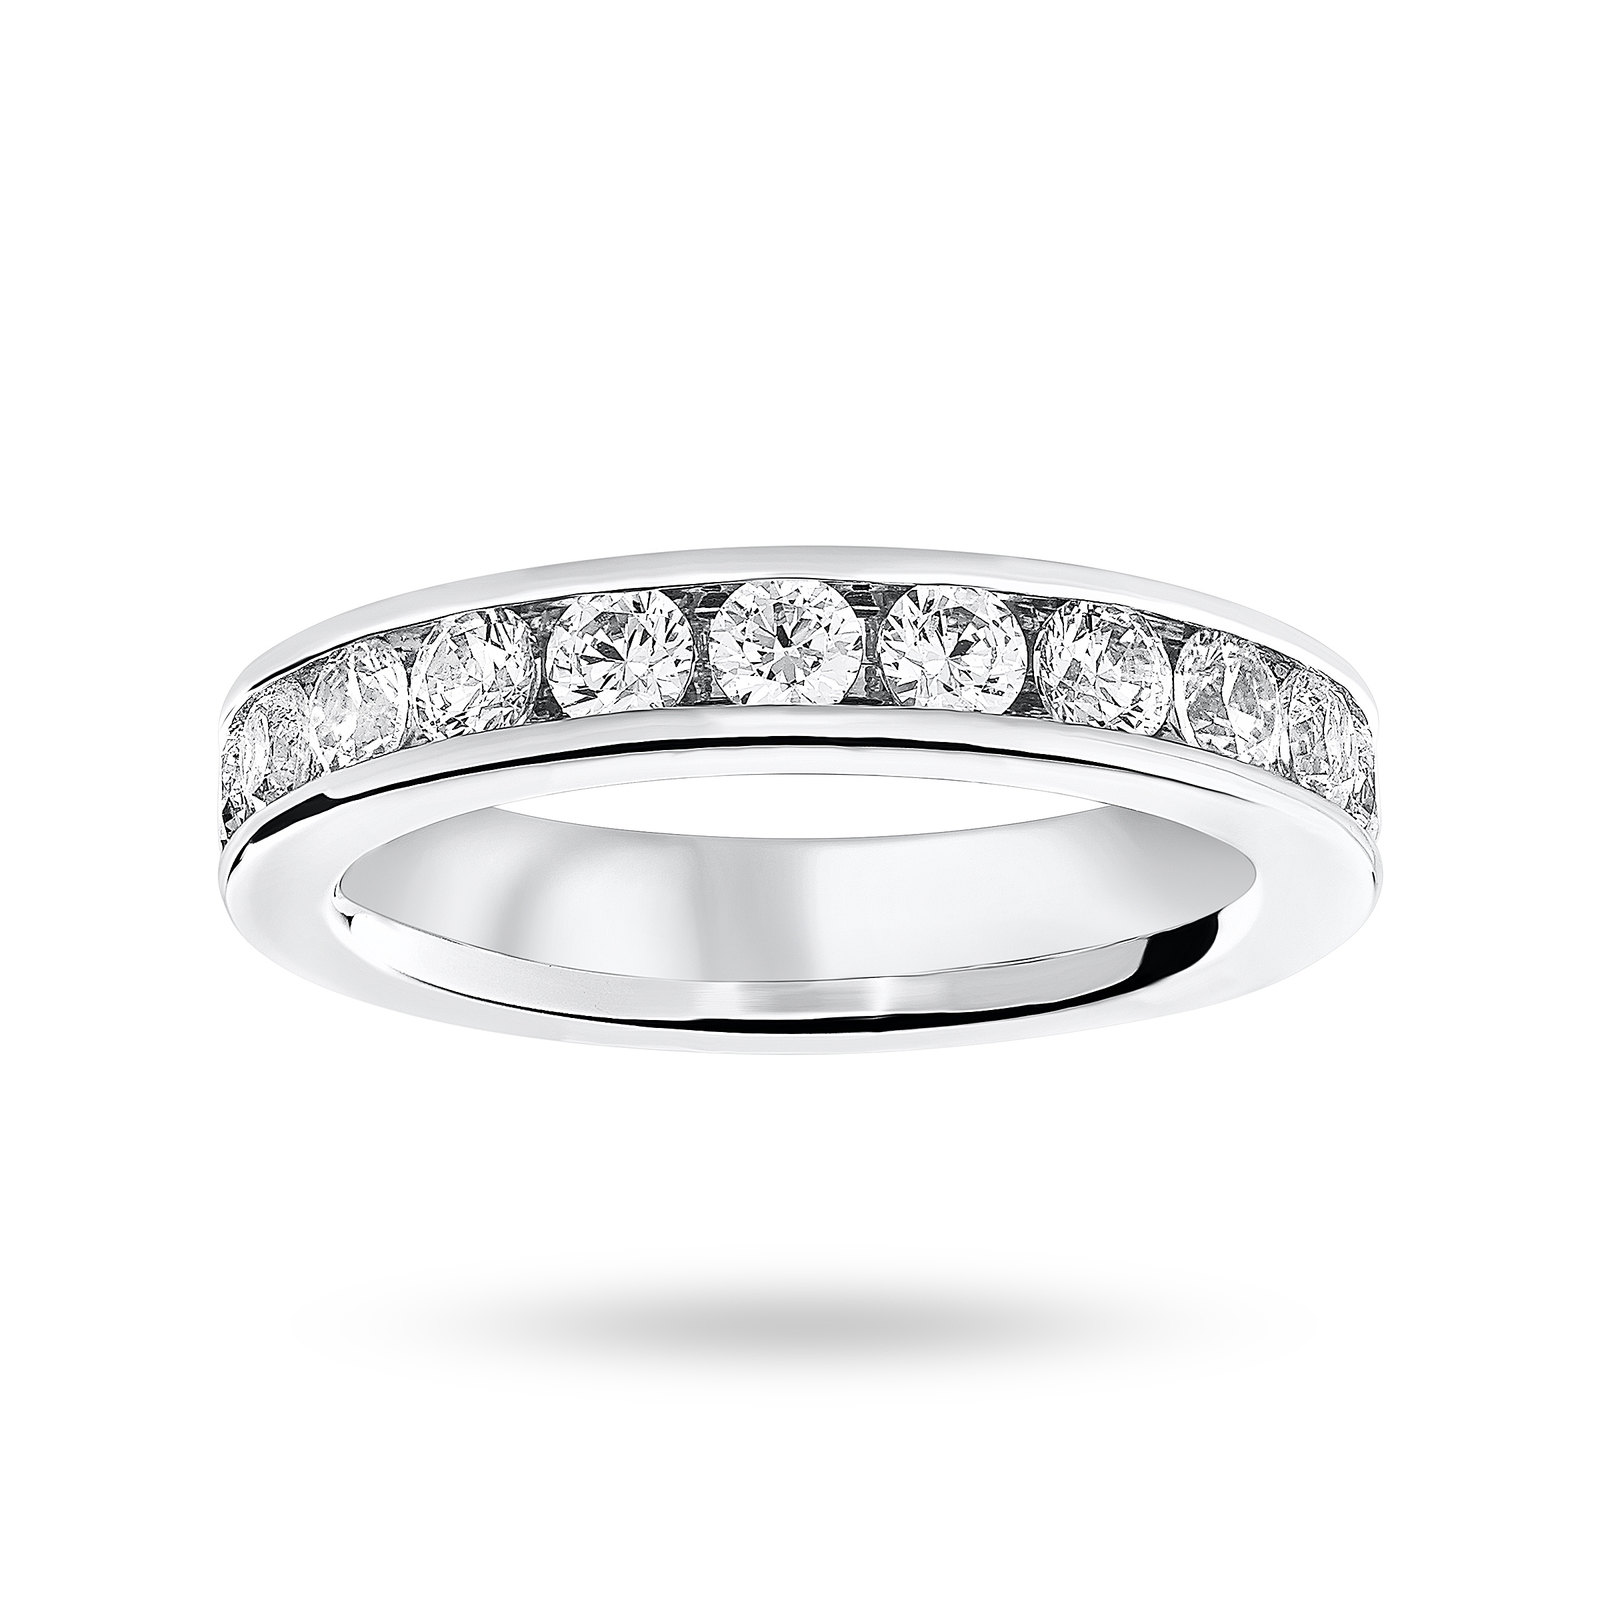 18ct White Gold 2.00cttw Diamond Full Eternity Ring